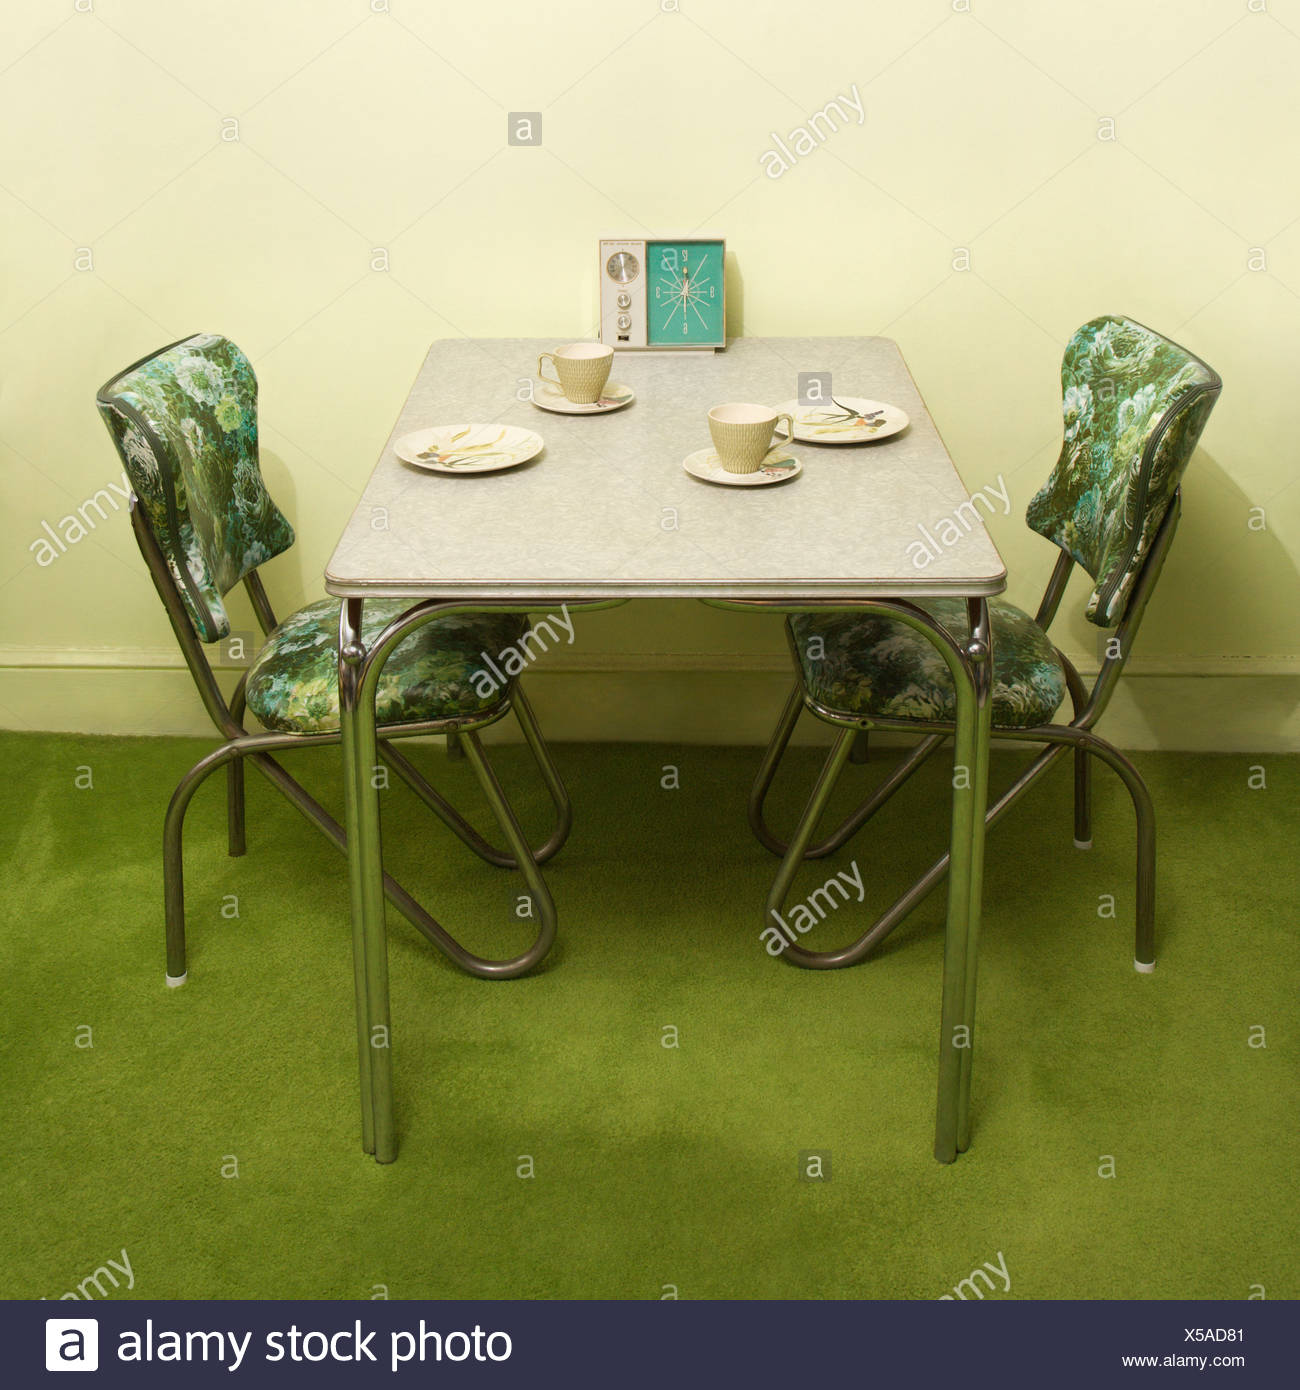 Retro 50 S Formica And Chrome Dinette Set With Green Vinyl Chairs Stock Photo Alamy